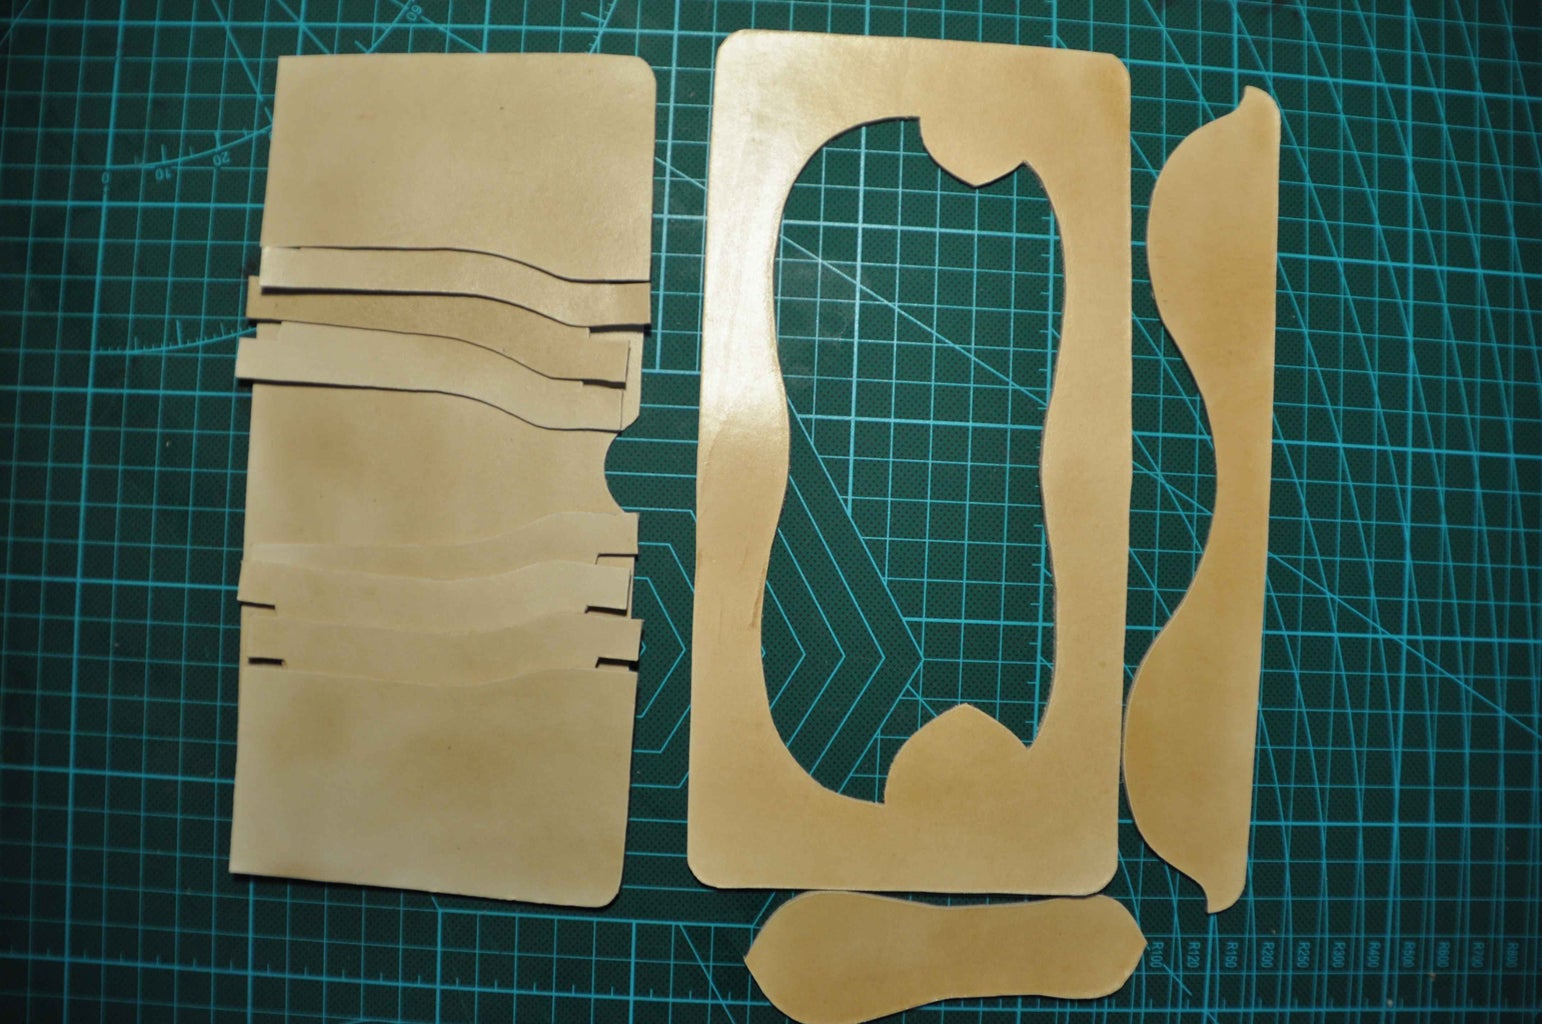 Cut Off the Drew Pieces With Scissors and Knife.